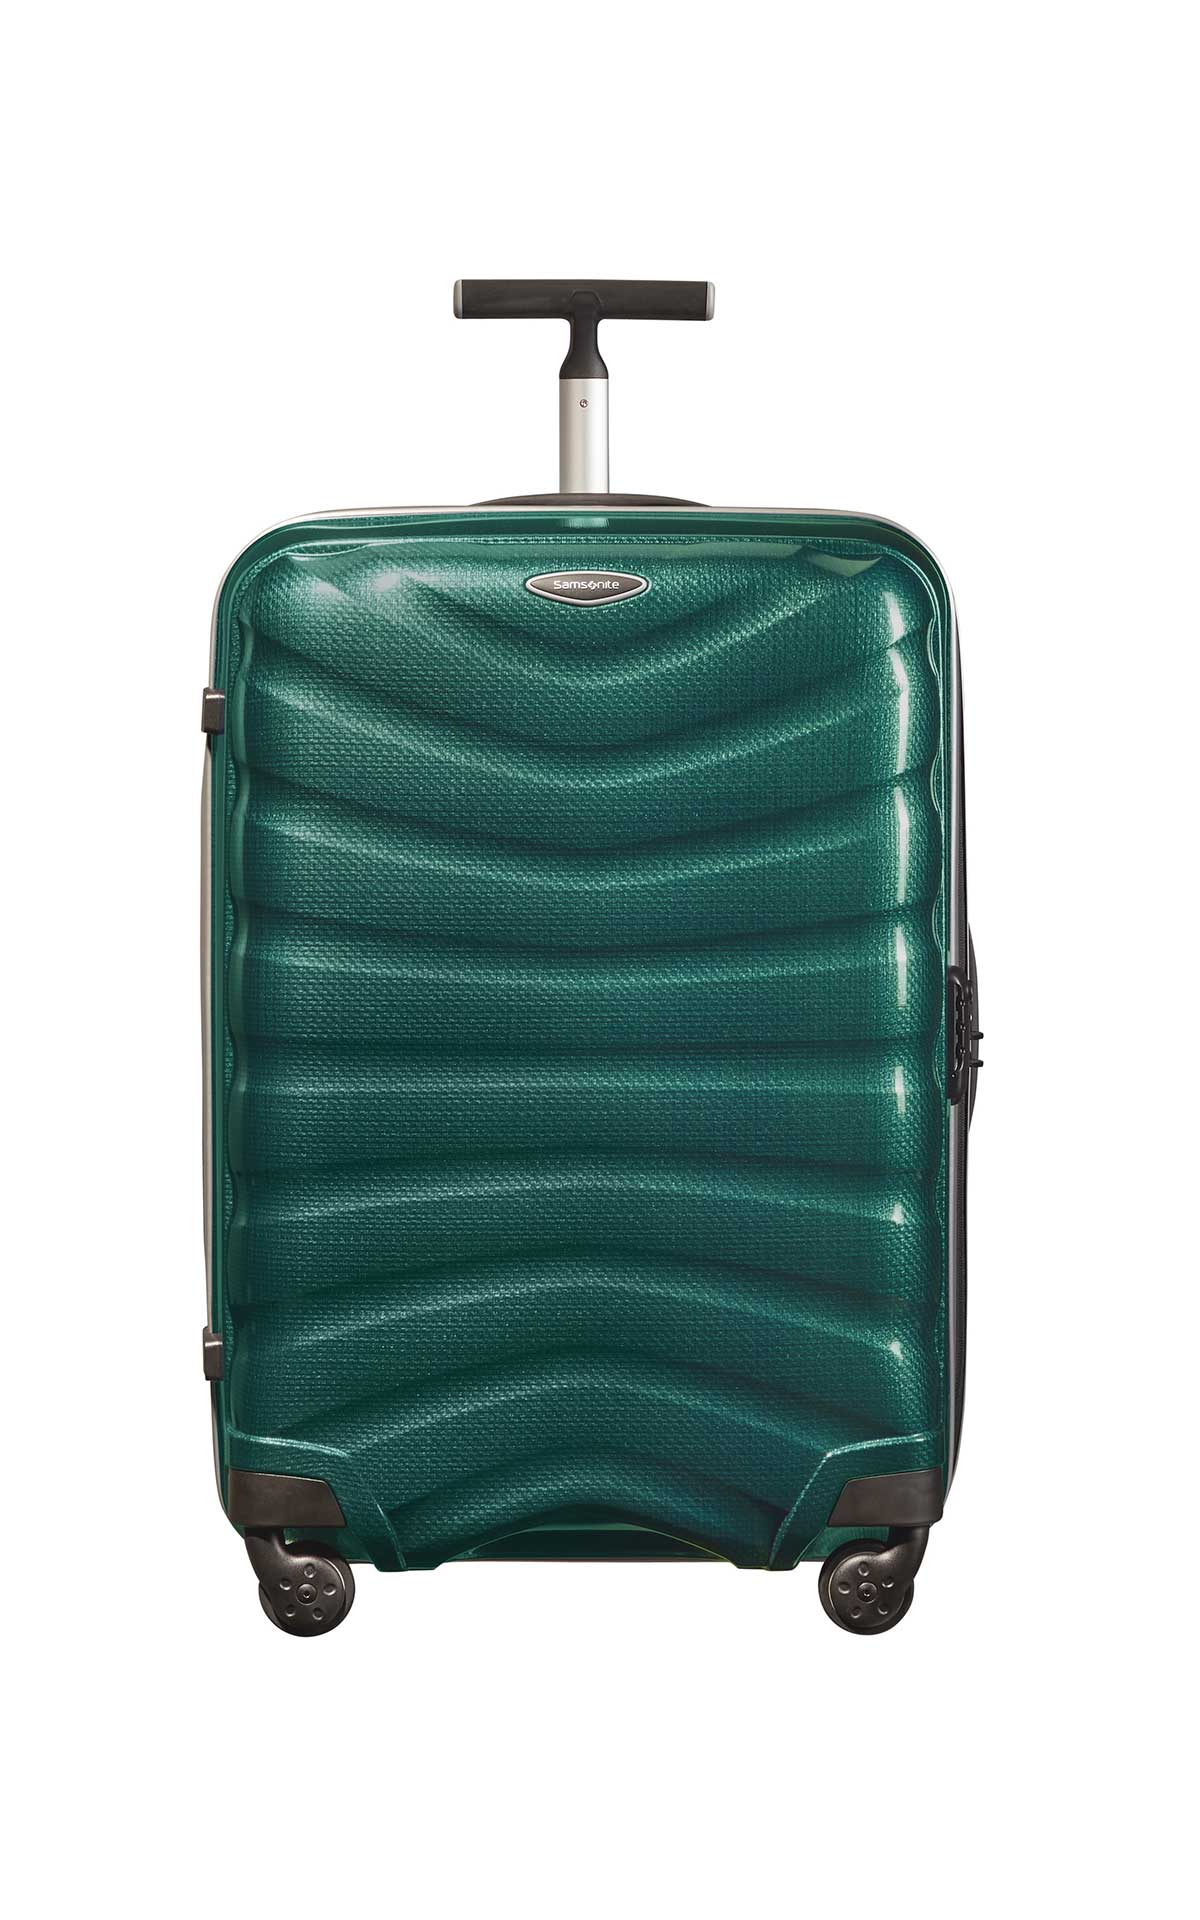 Green Firelite suitcase Samsonite